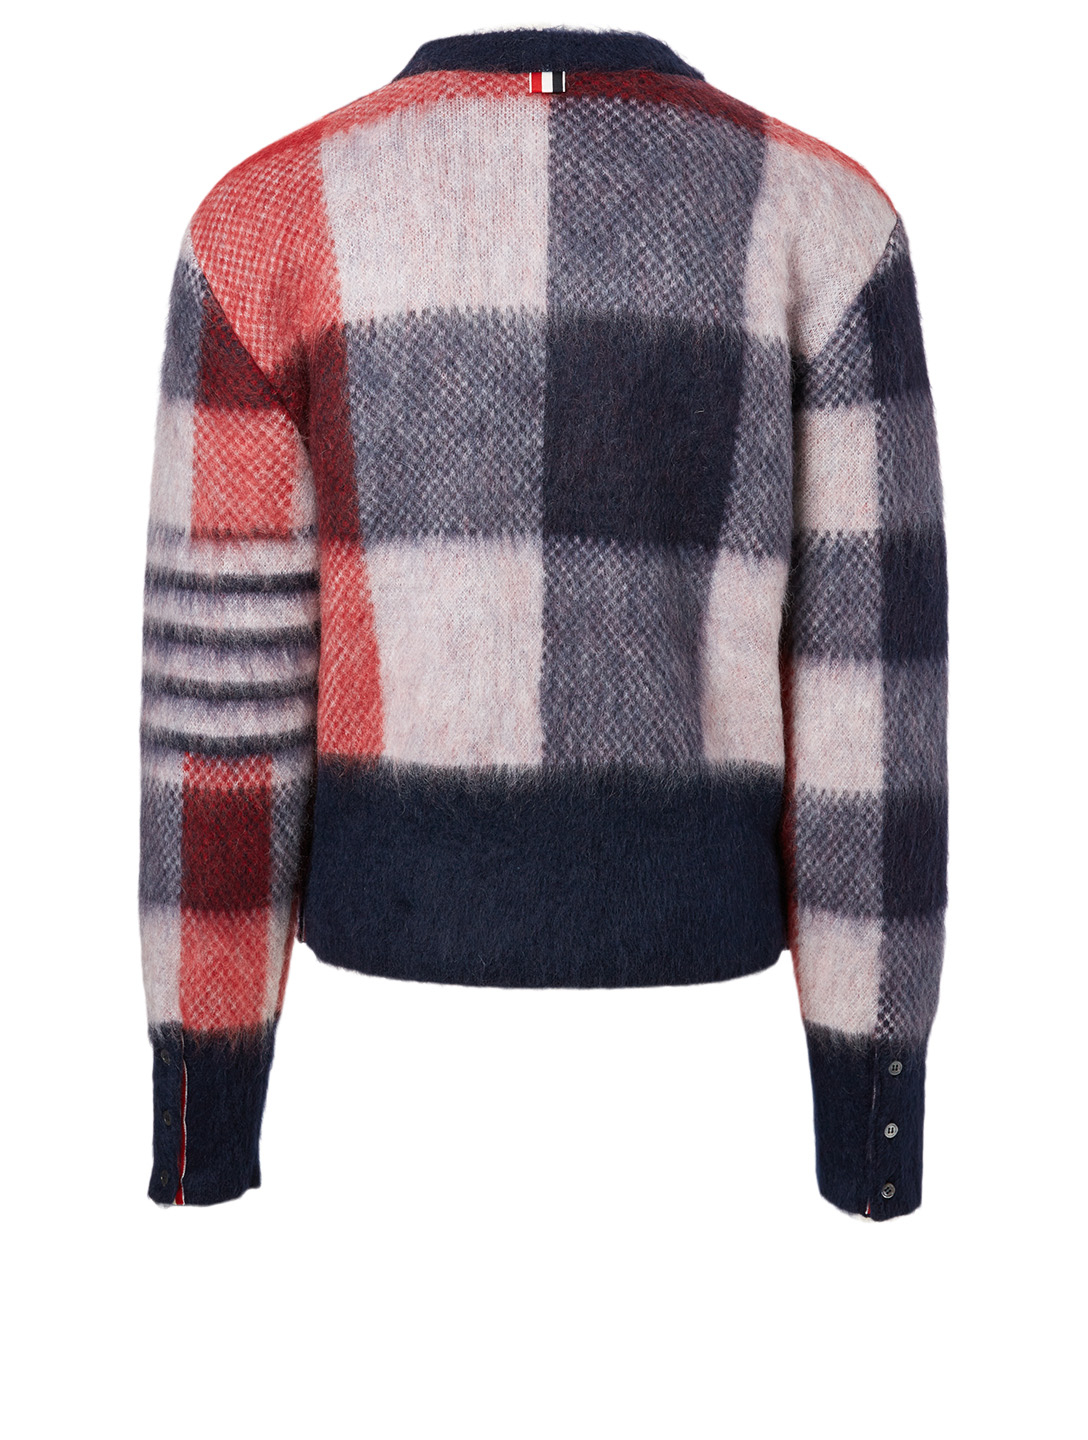 THOM BROWNE Mohair-Blend Buffalo Check Jacquard Sweater Men's Multi